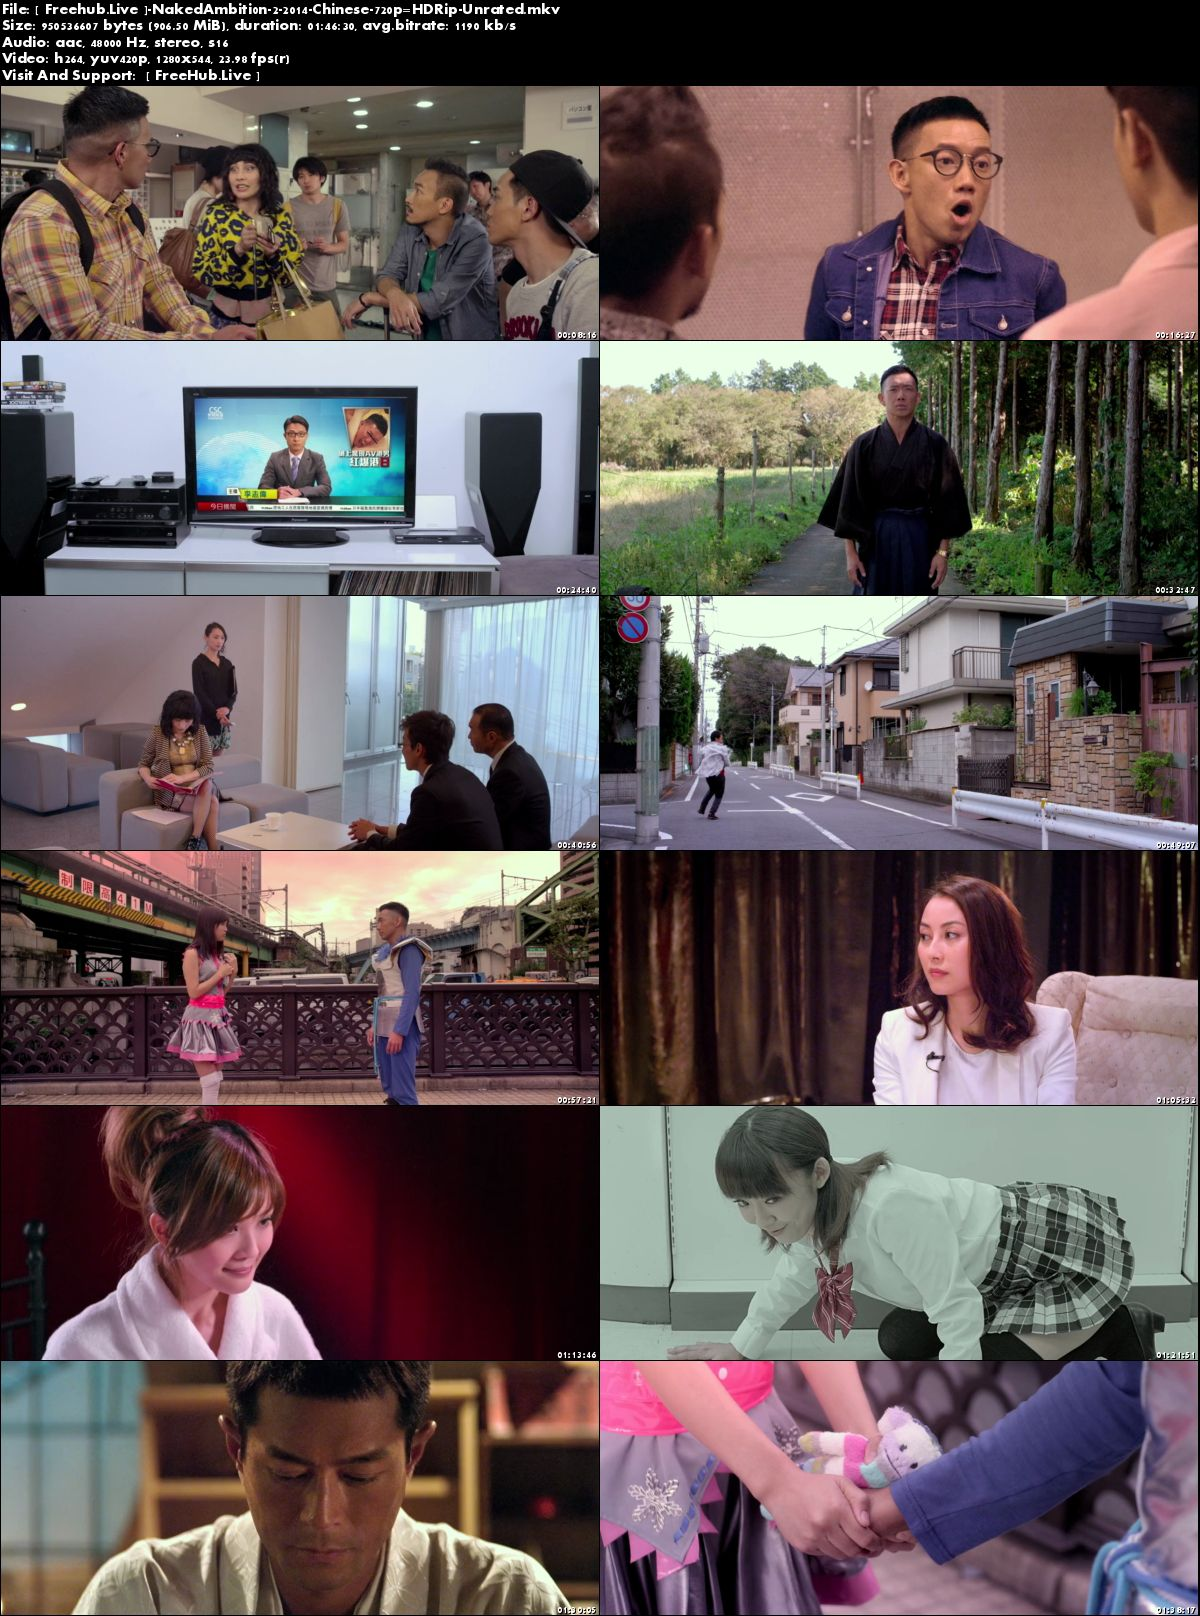 Watch Online Naked Ambition 2 2014 Movie Chinese 900MB HDRip 720p Full Movie Download 7starhd